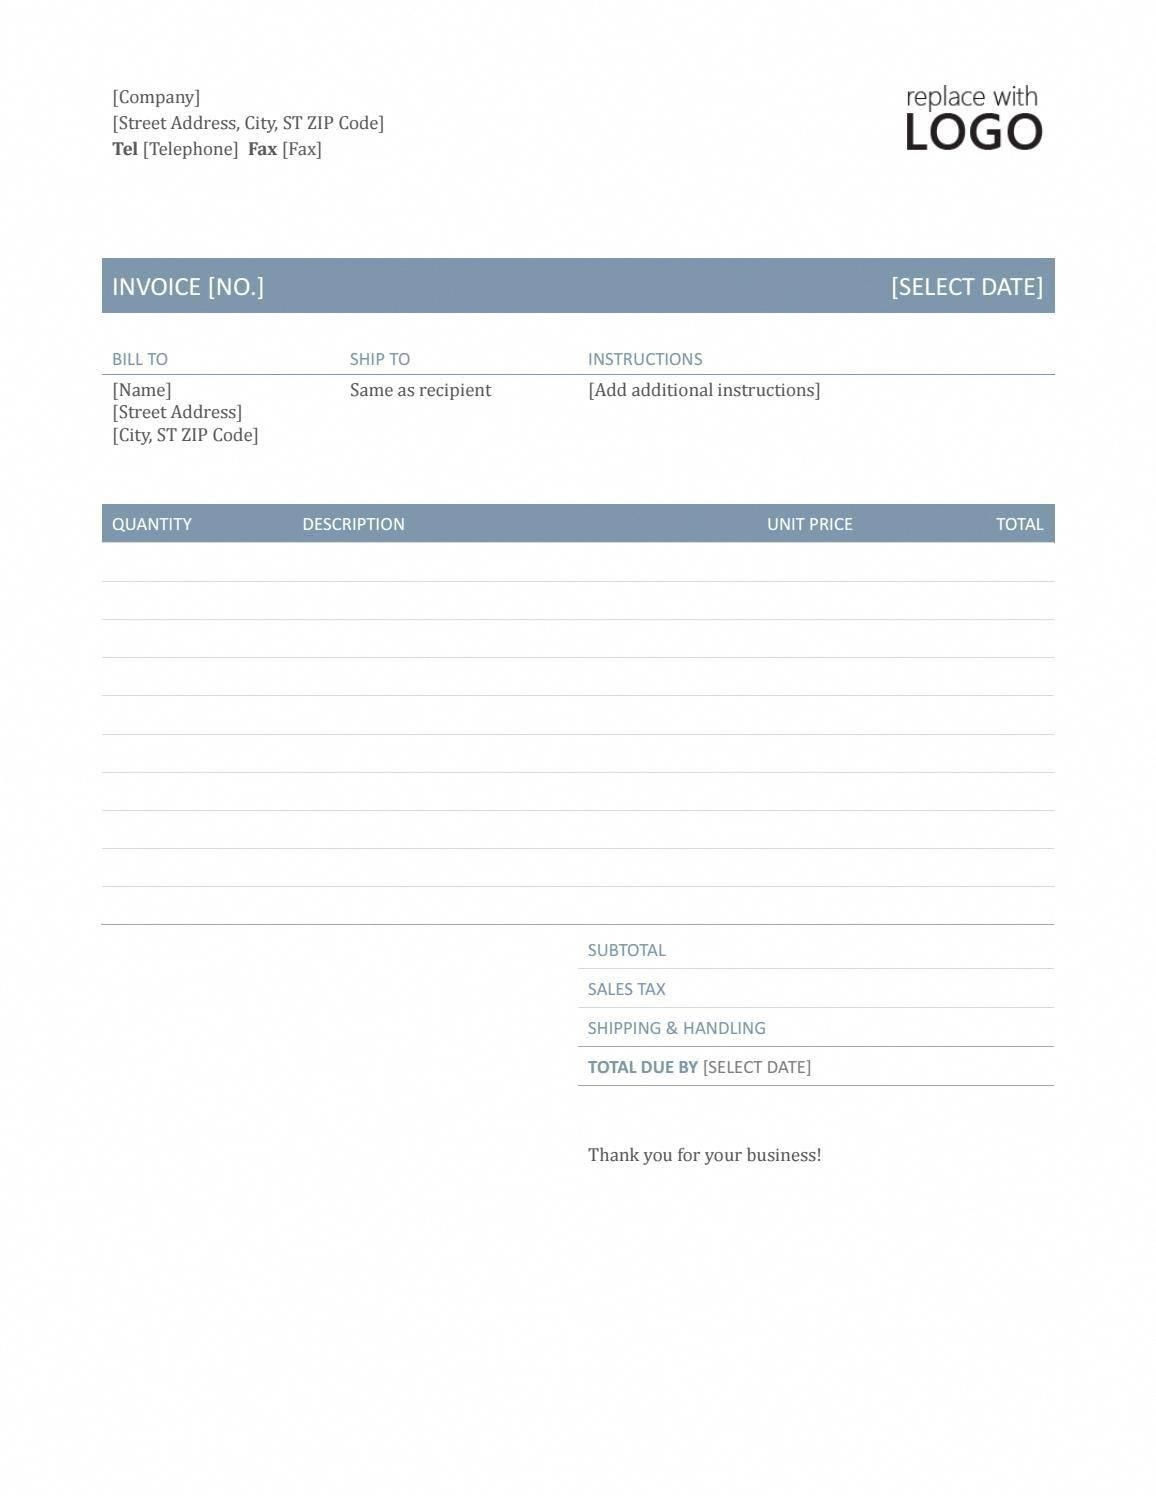 Here Is A Travel Expenses Quotation Template You Can Obtain Its Editable Copy From Our Website Mistribus Invoice Template Word Invoice Template Invoice Layout